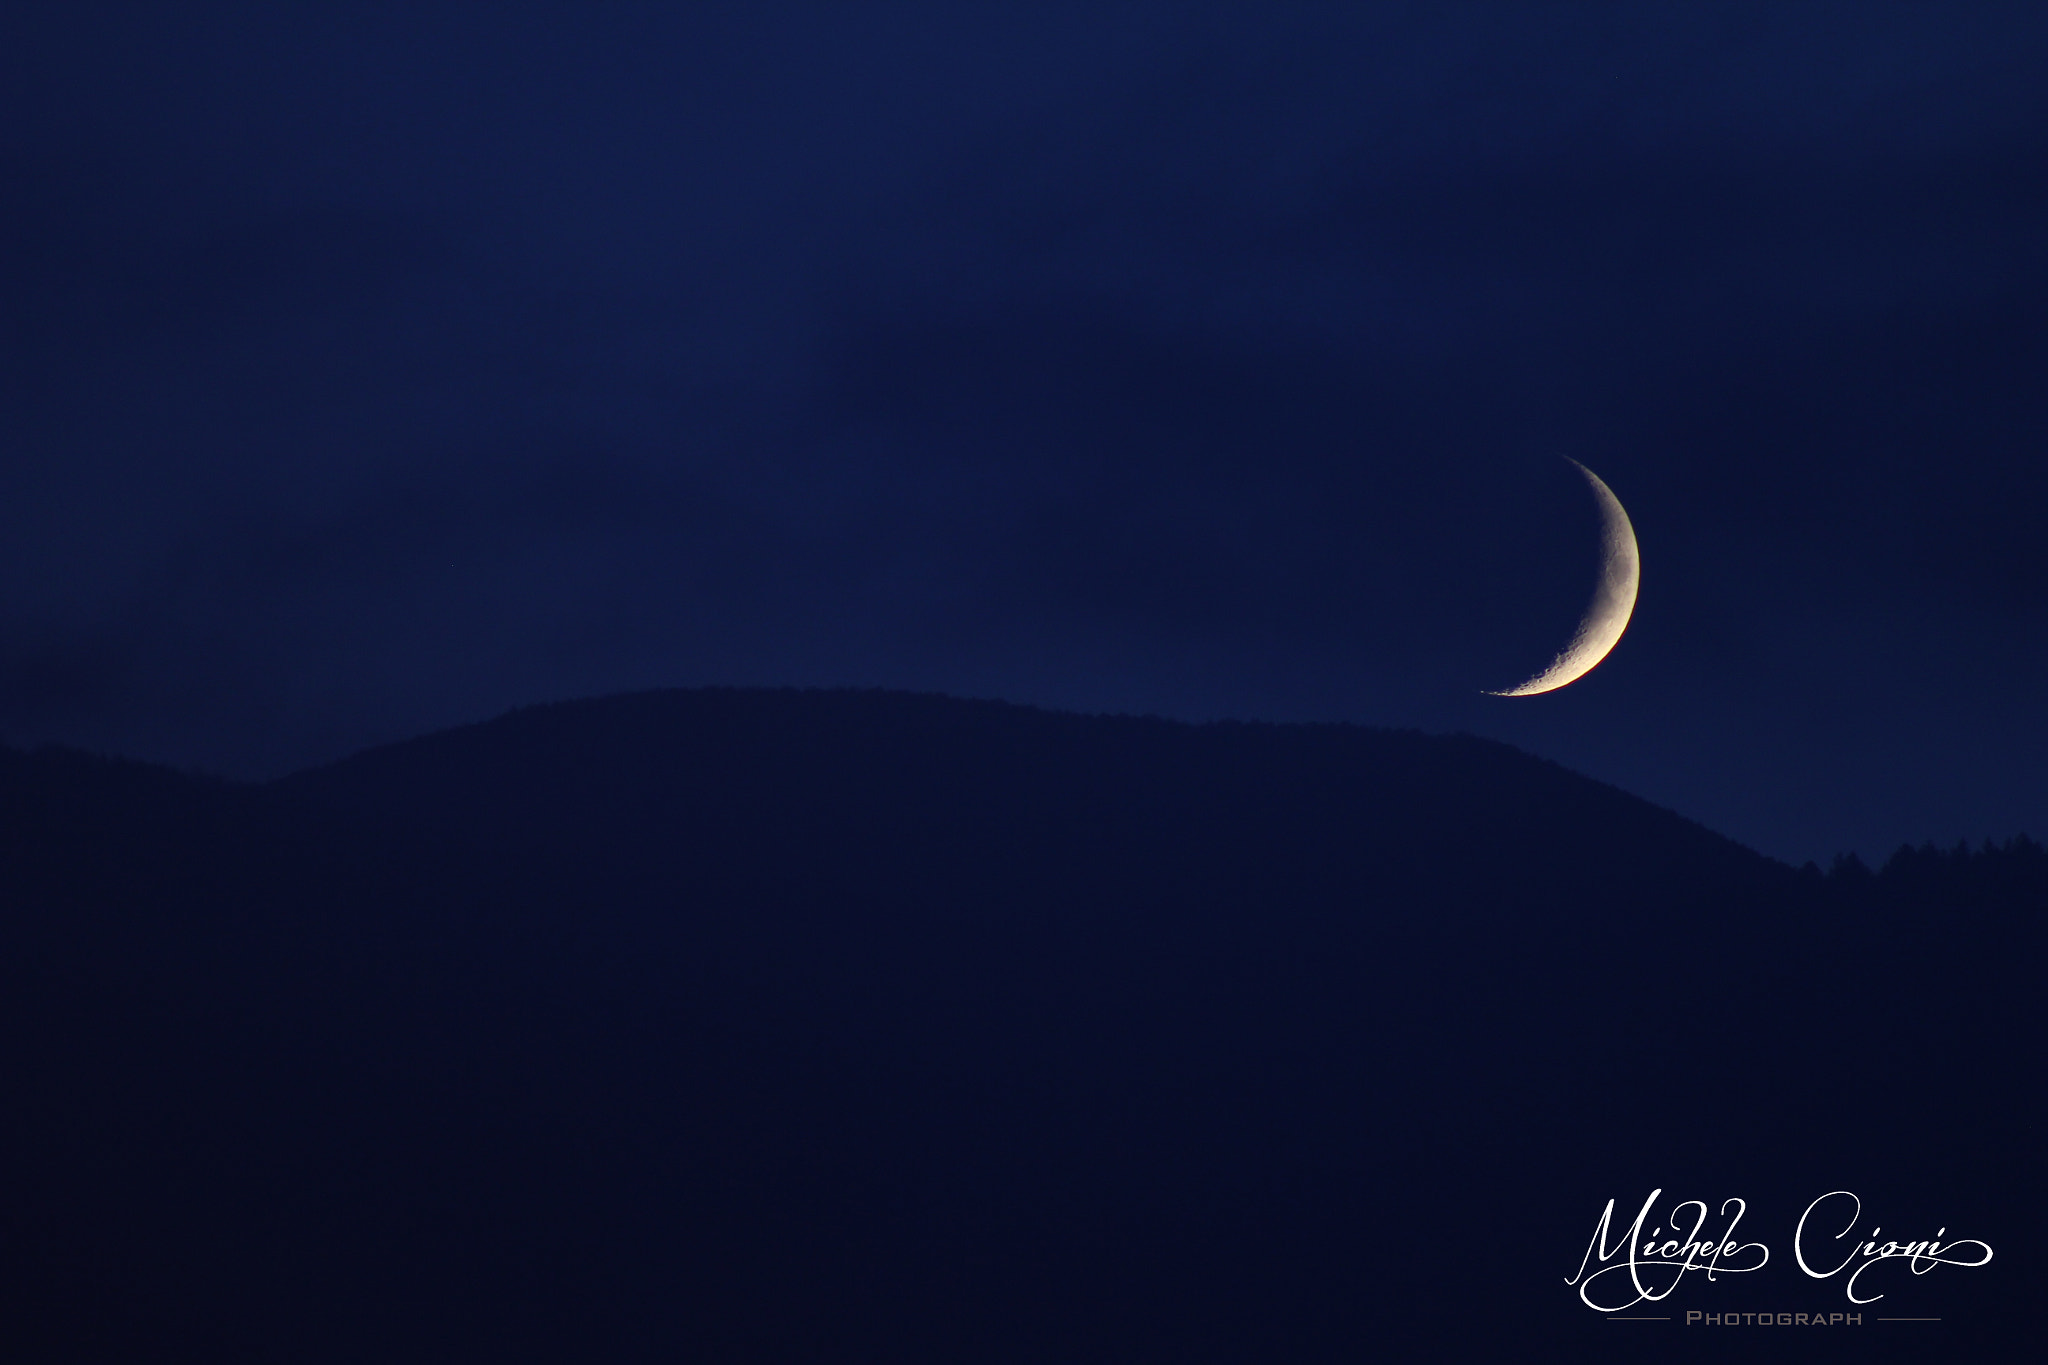 Photograph Crescent Moon by Michele Cioni on 500px